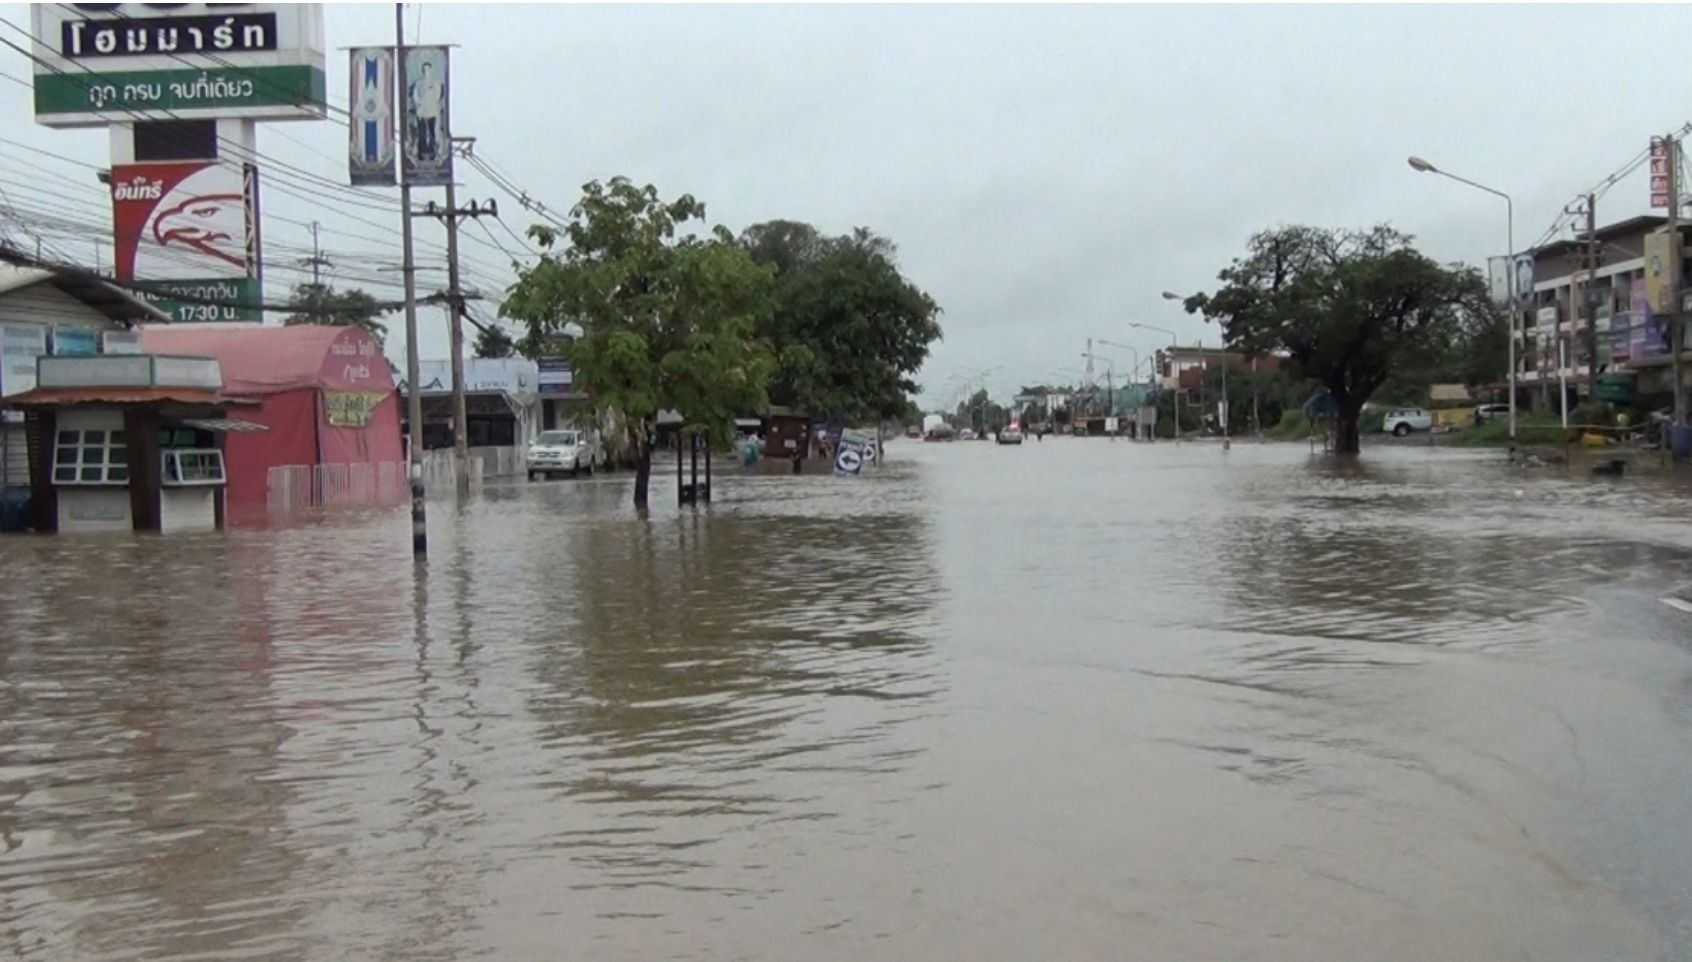 Farmlands flooded in Nong Bua Lam Phu Province as heavy rain persists | Thaiger